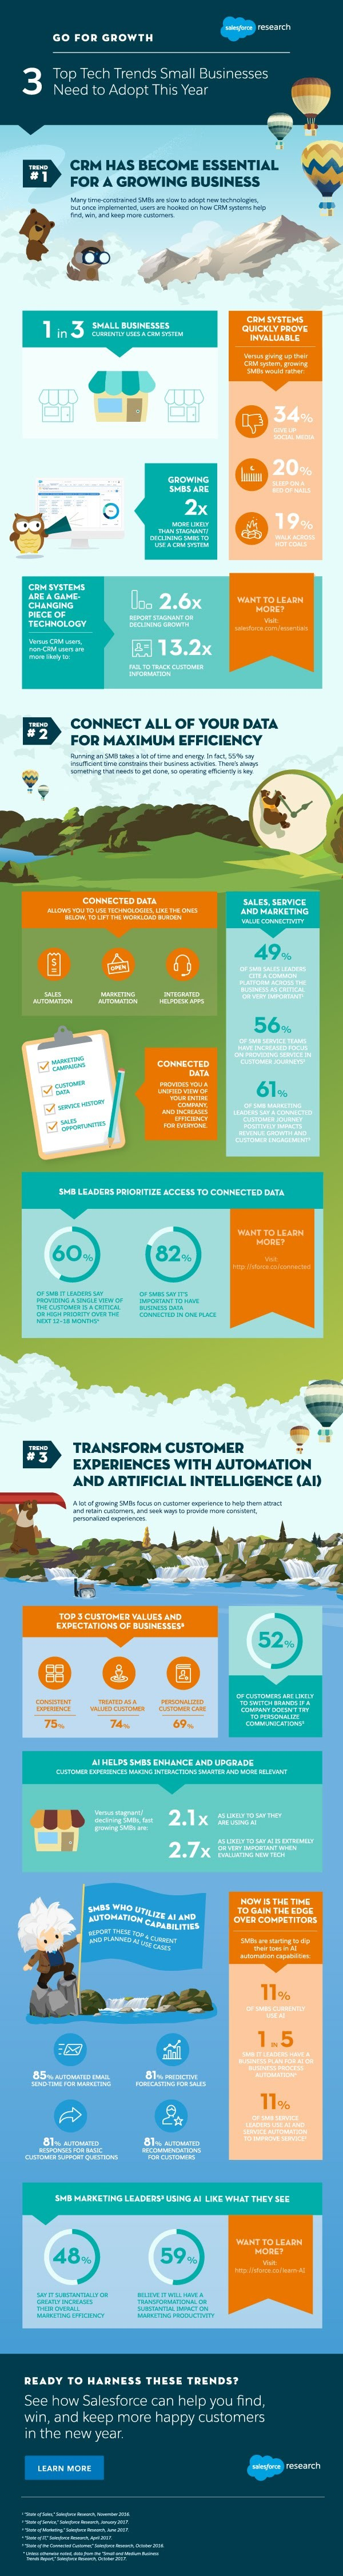 3 Top Tech Trends Small Businesses Need to Adopt This Year [Infographic] | Social Media Today